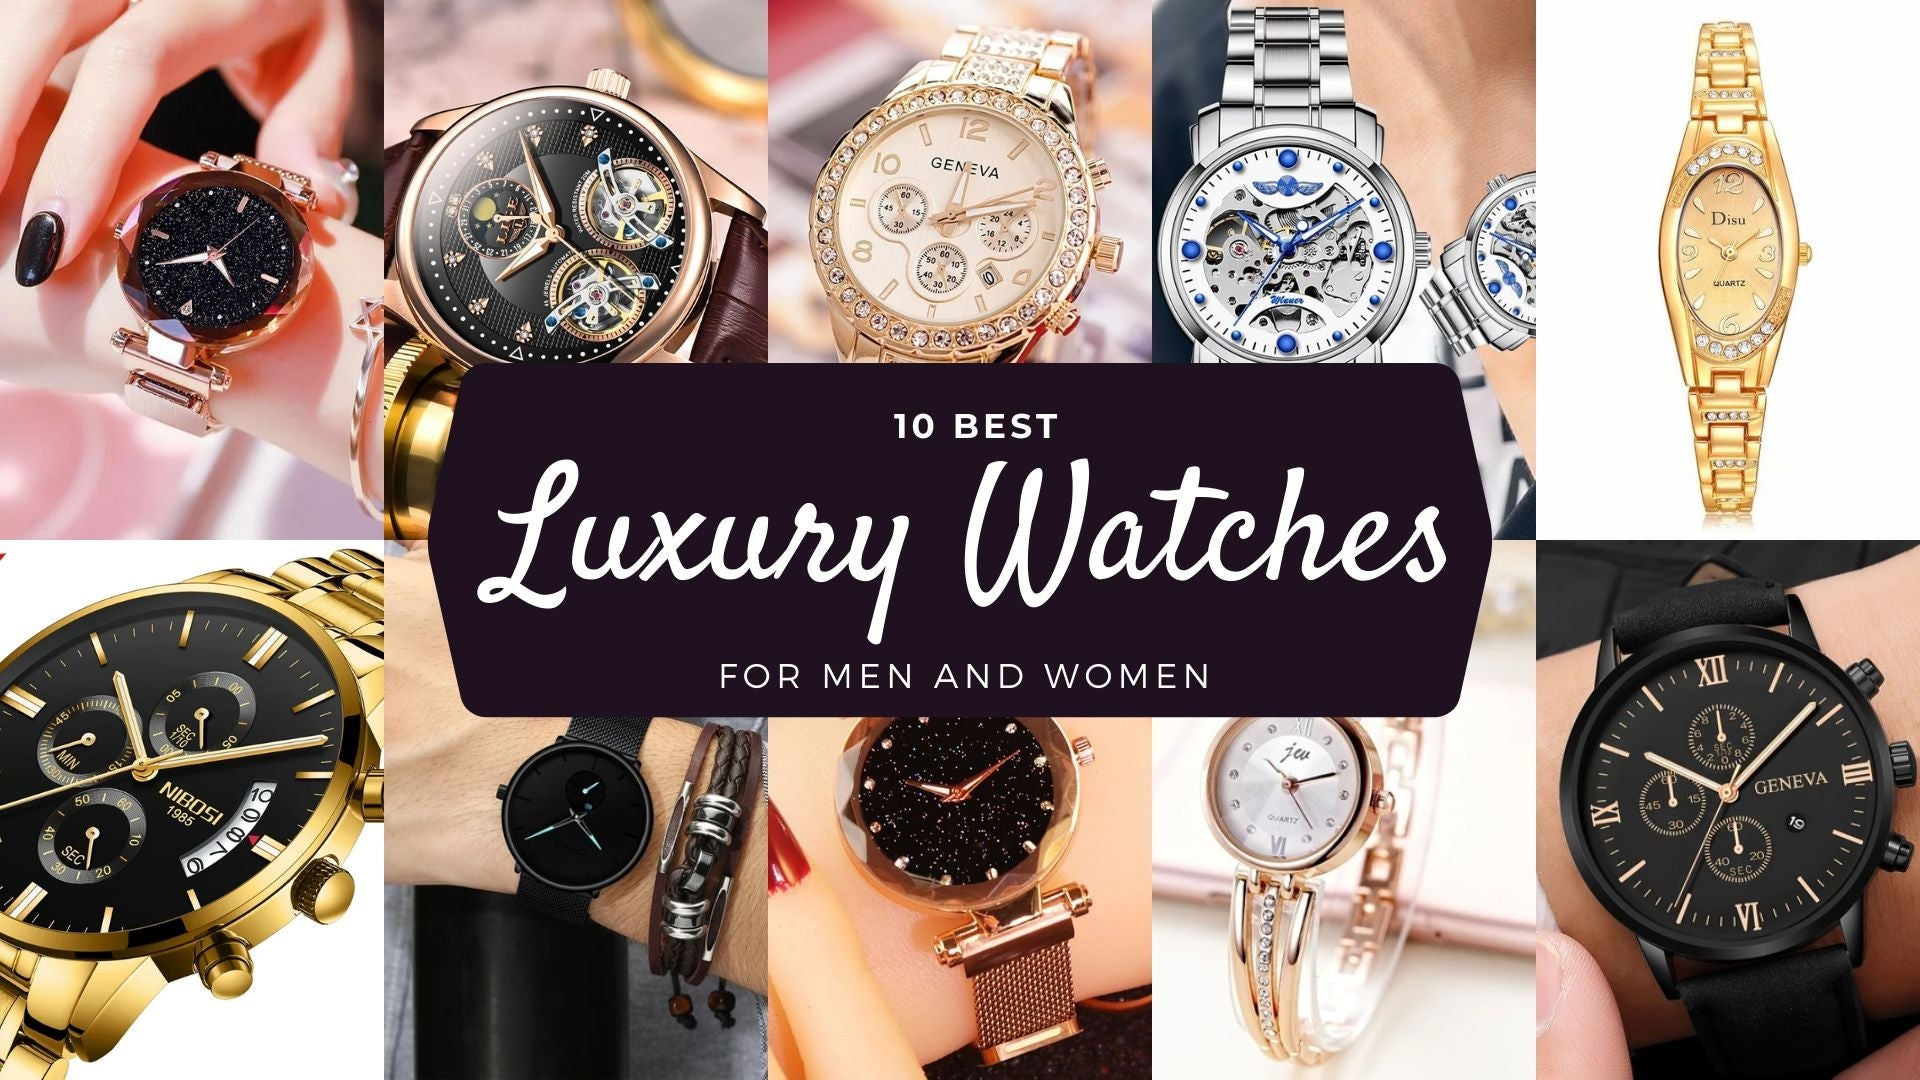 10 Best Luxury Watches for Men and Women